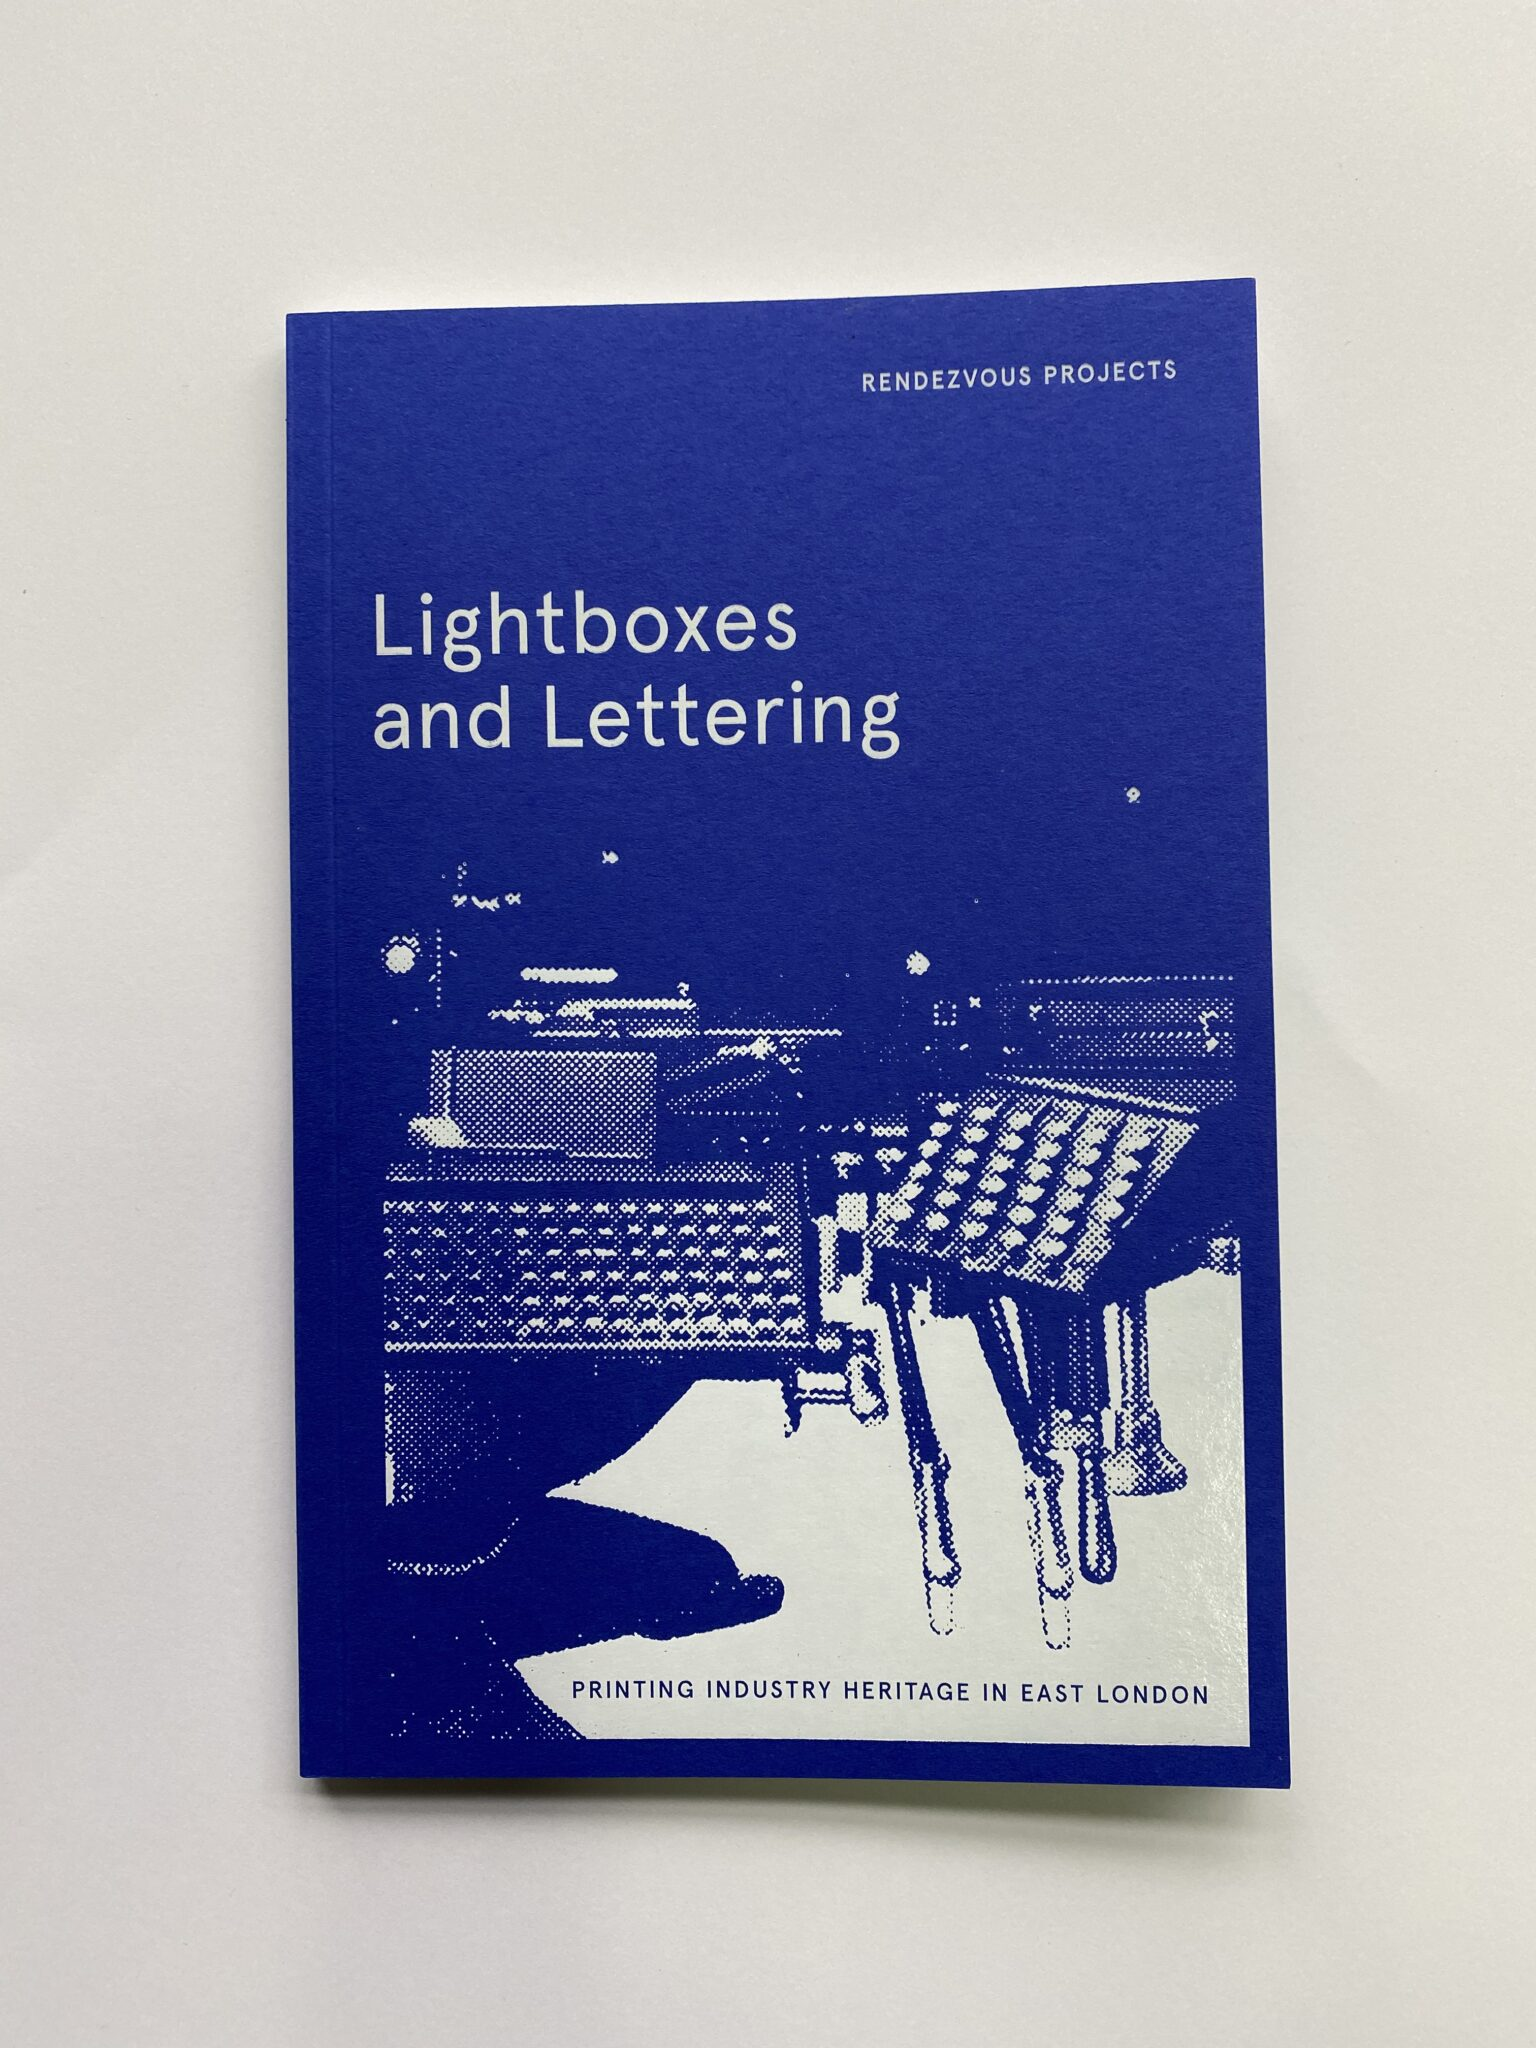 Lightboxes and Lettering exhibition booklet